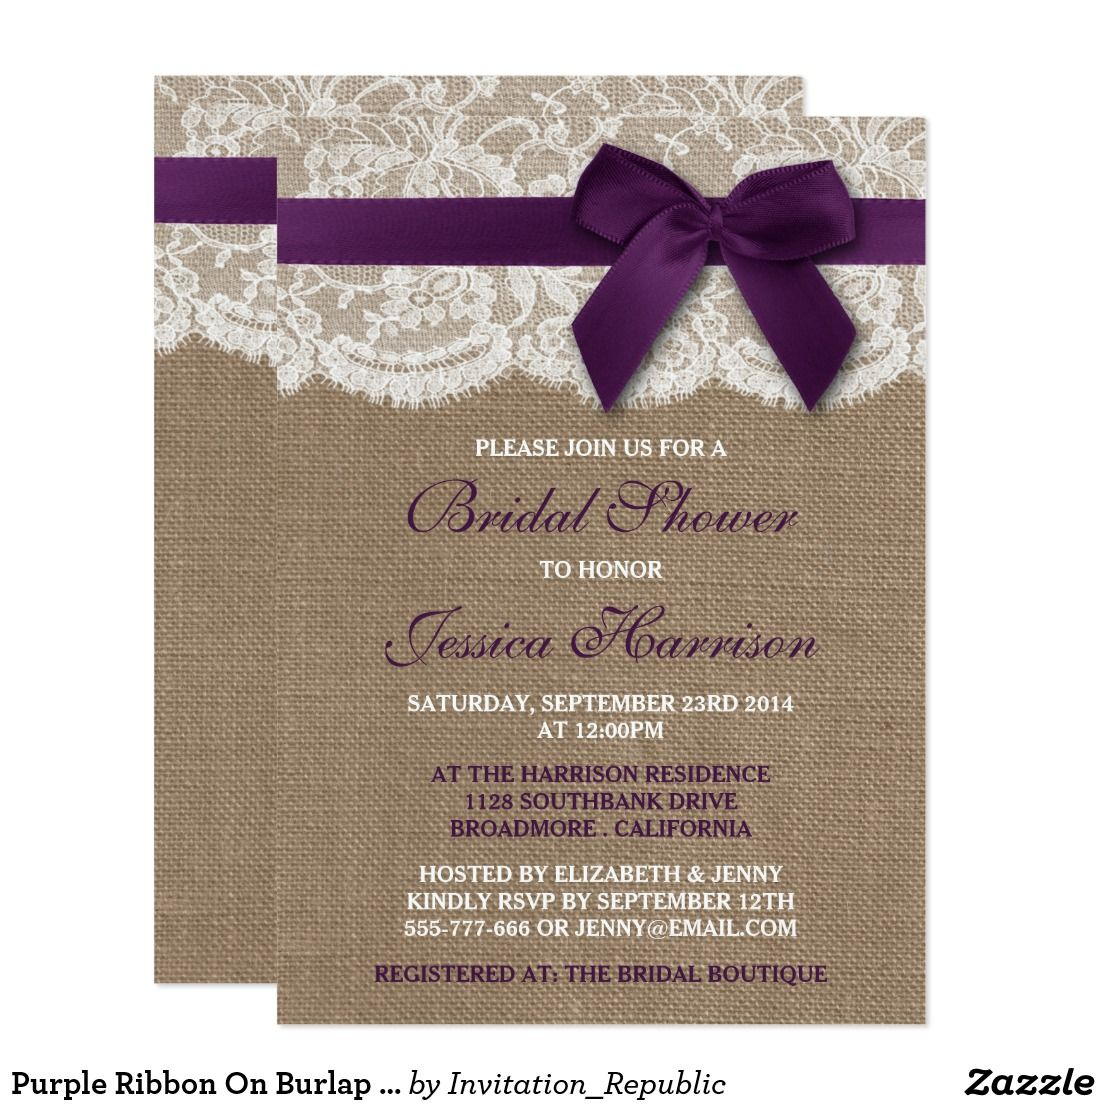 Purple Ribbon On Burlap Lace Bridal Shower Invitation Zazzle